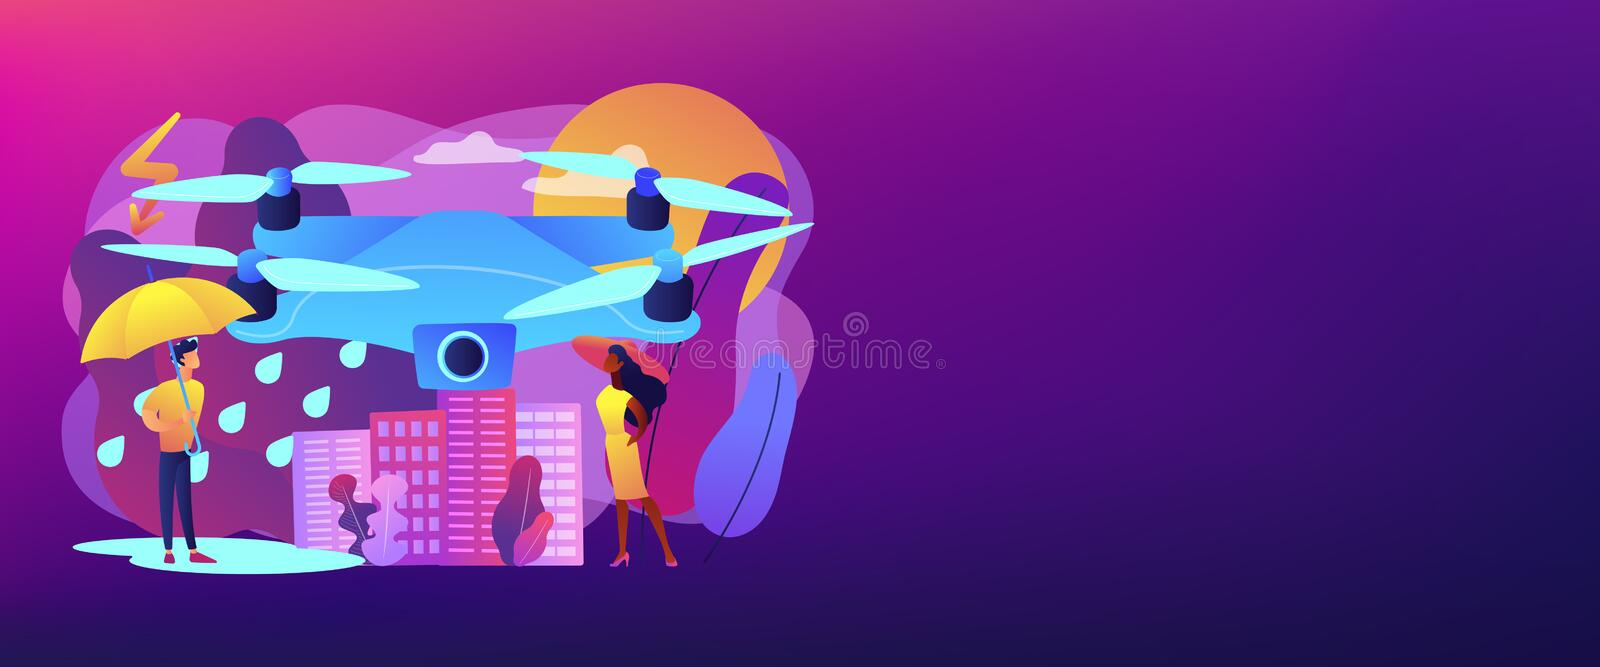 Meteorology drones concept banner header. Drone over the city collecting meteorological data. Meteorology drones, meteorological data collection, accurate stock illustration